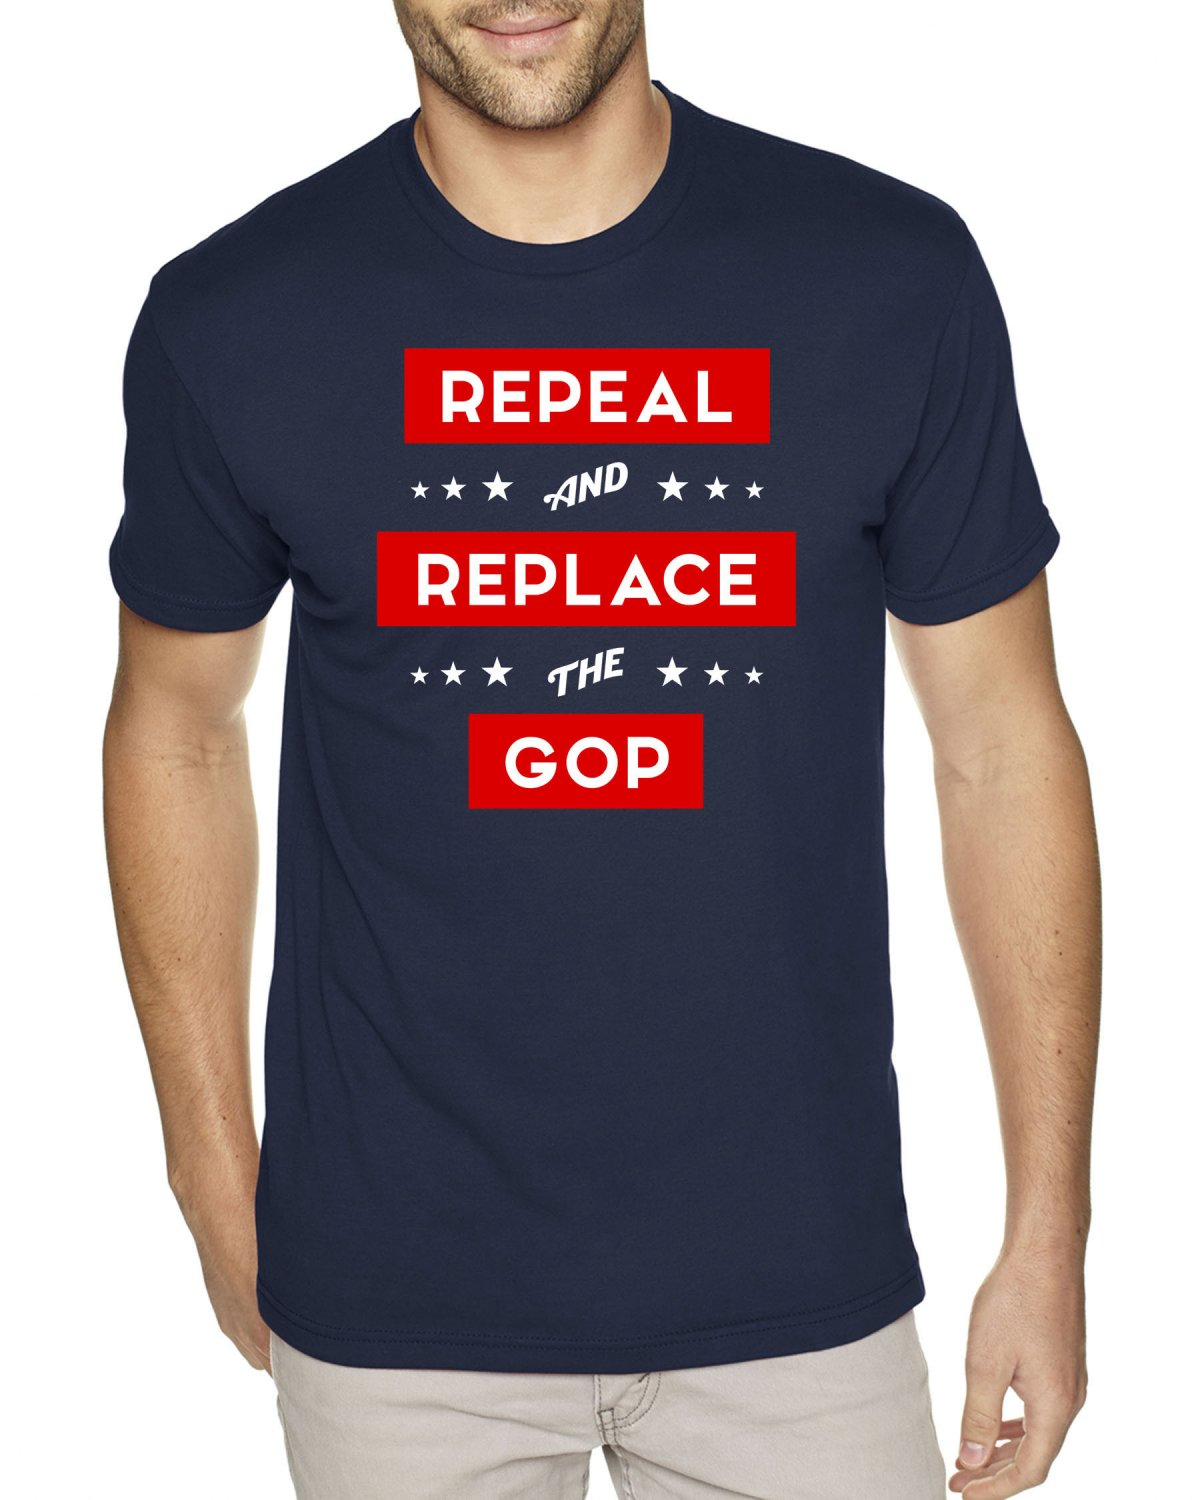 REPEAL AND REPLACE THE GOP - Premium Sueded Shirt SIZE 3XL